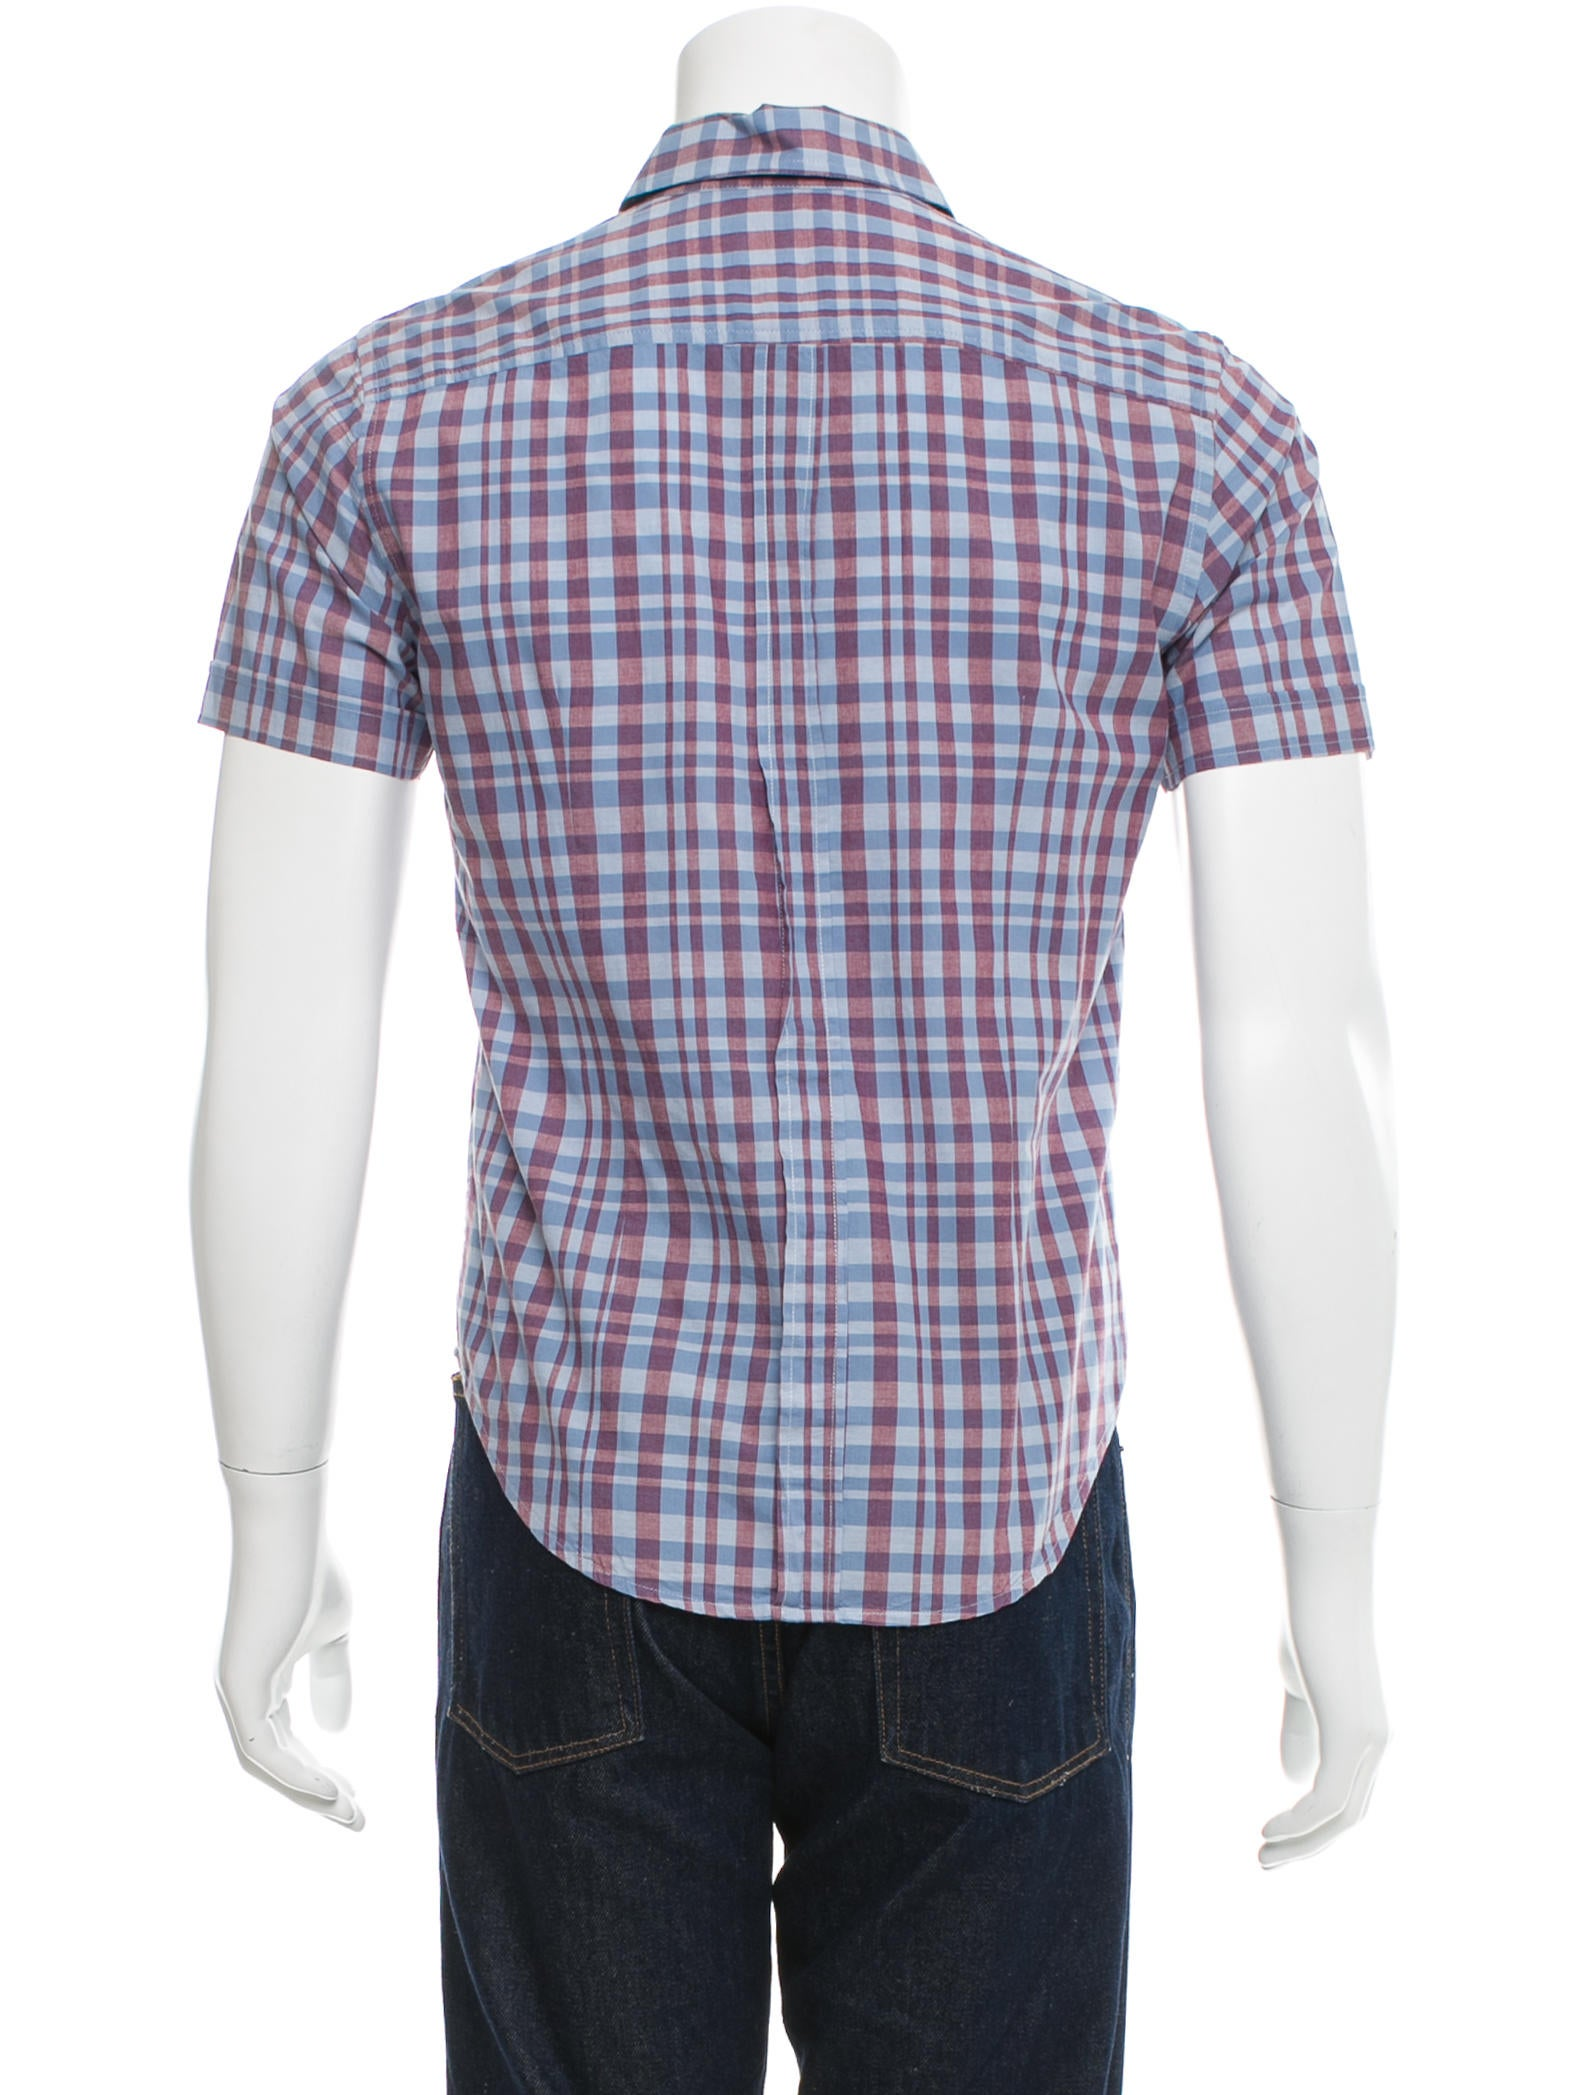 Band of outsiders plaid print button up shirt clothing for Purple plaid button up shirt